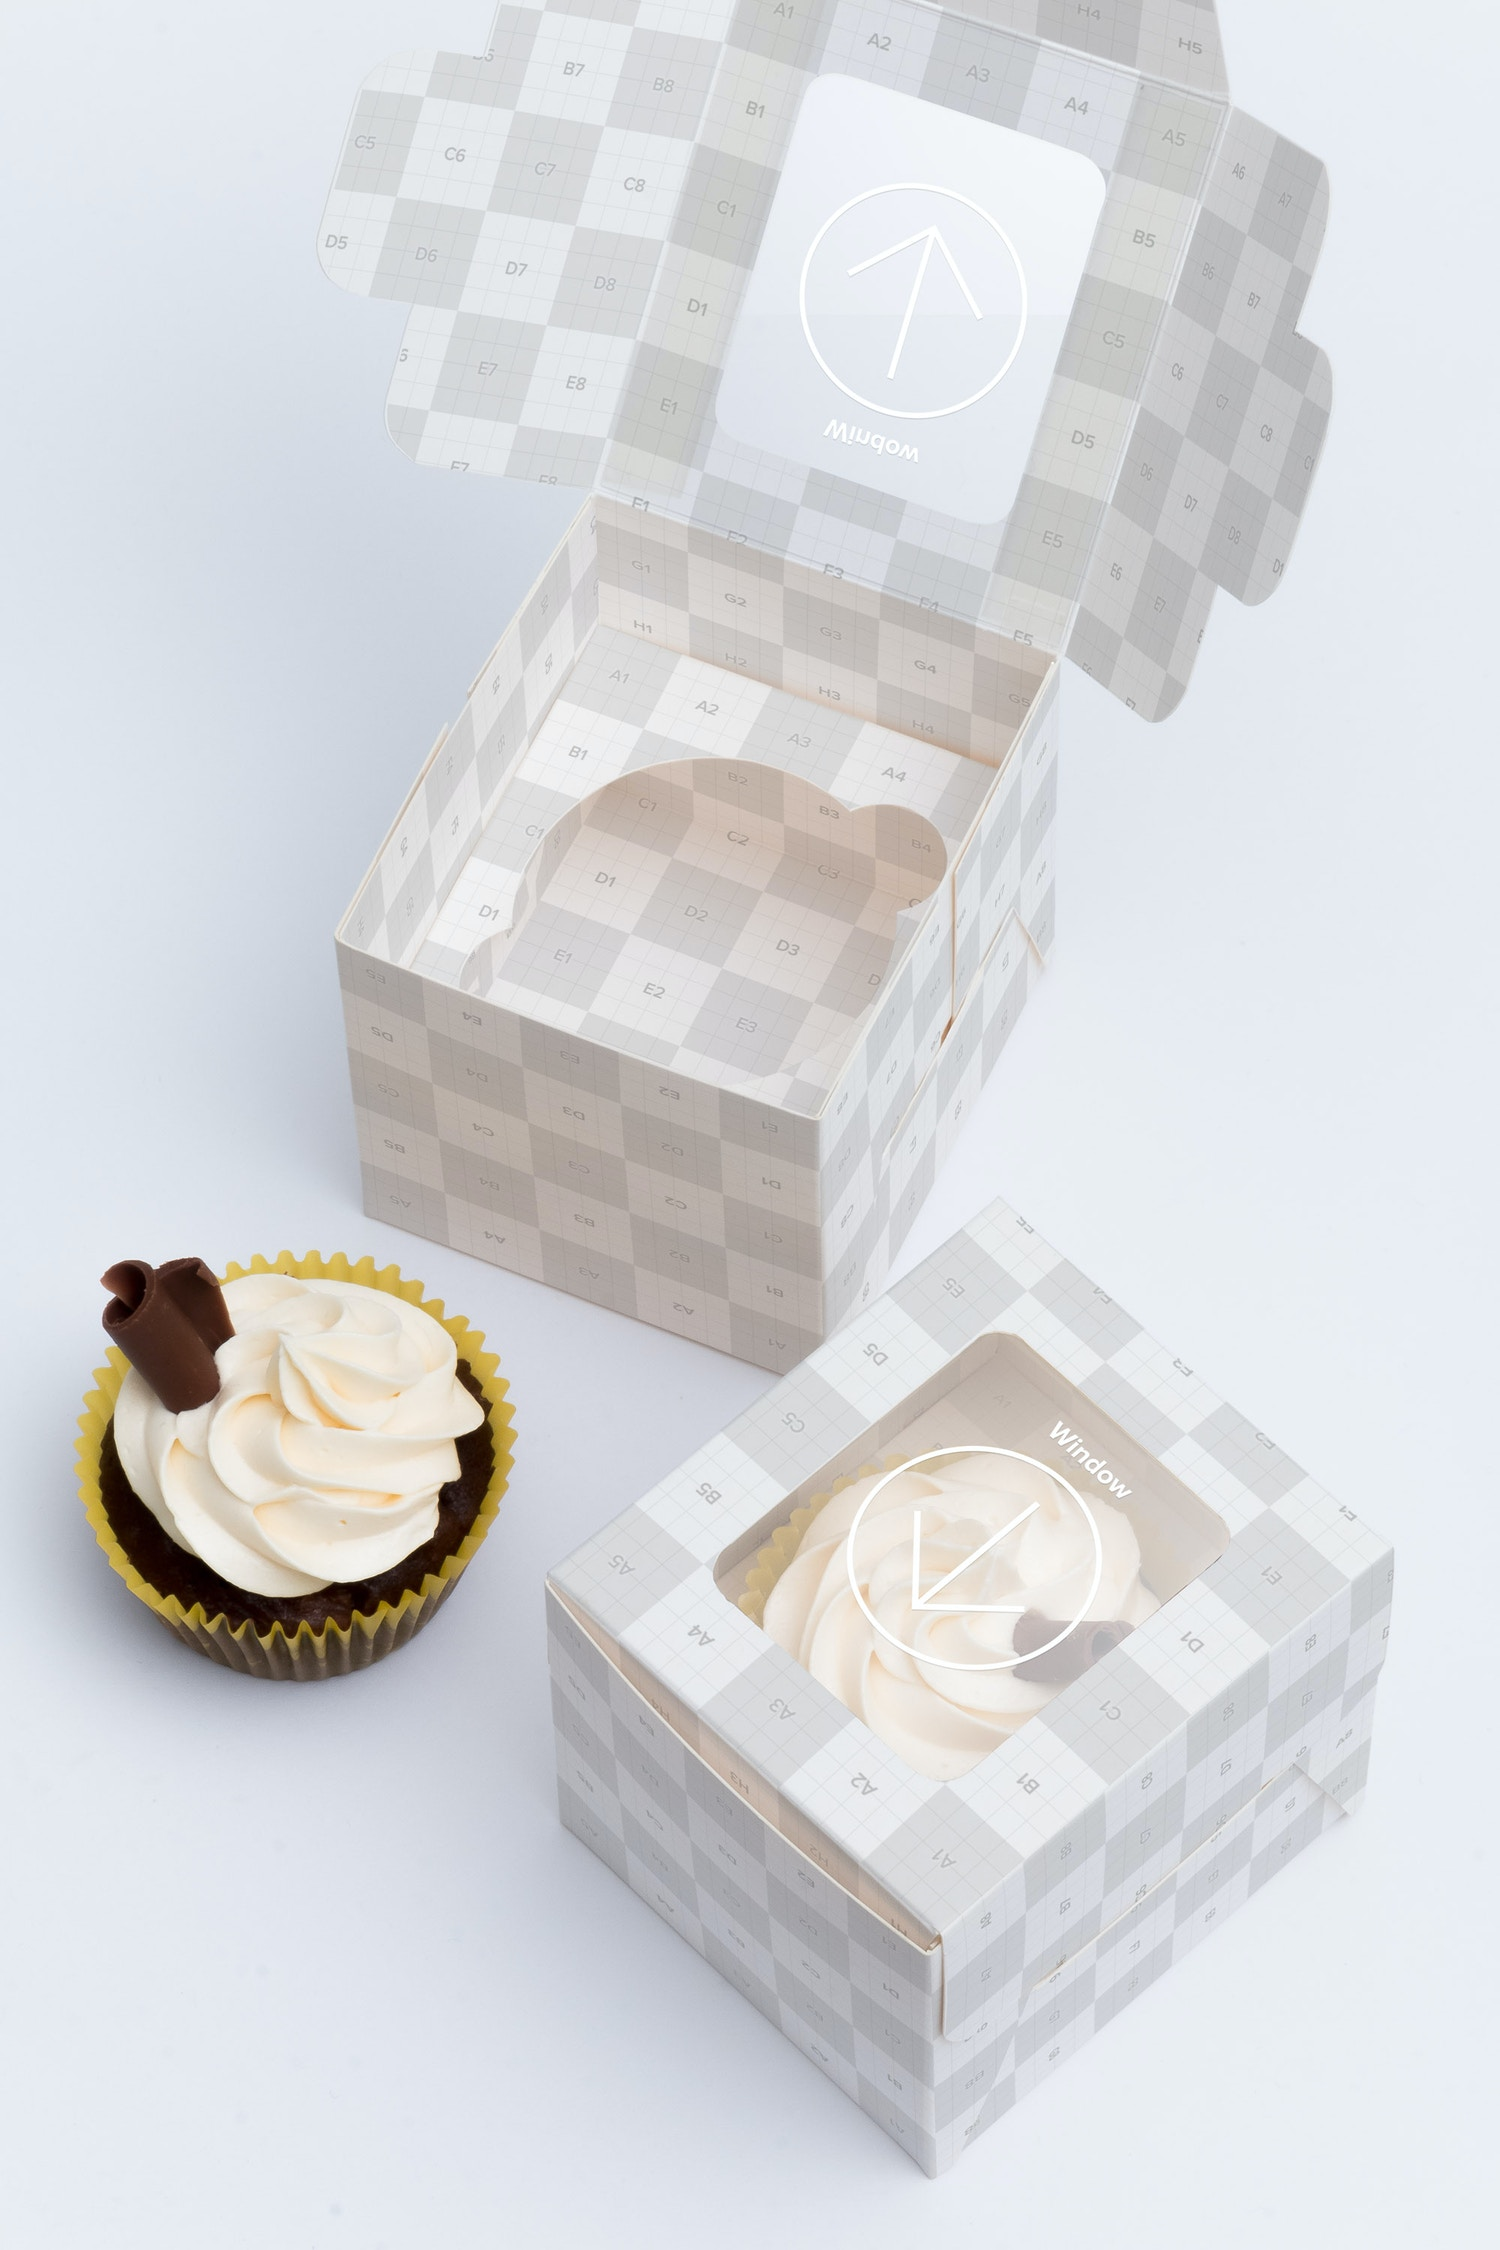 One Cupcake Box Mockup 01 by Ktyellow  on Original Mockups